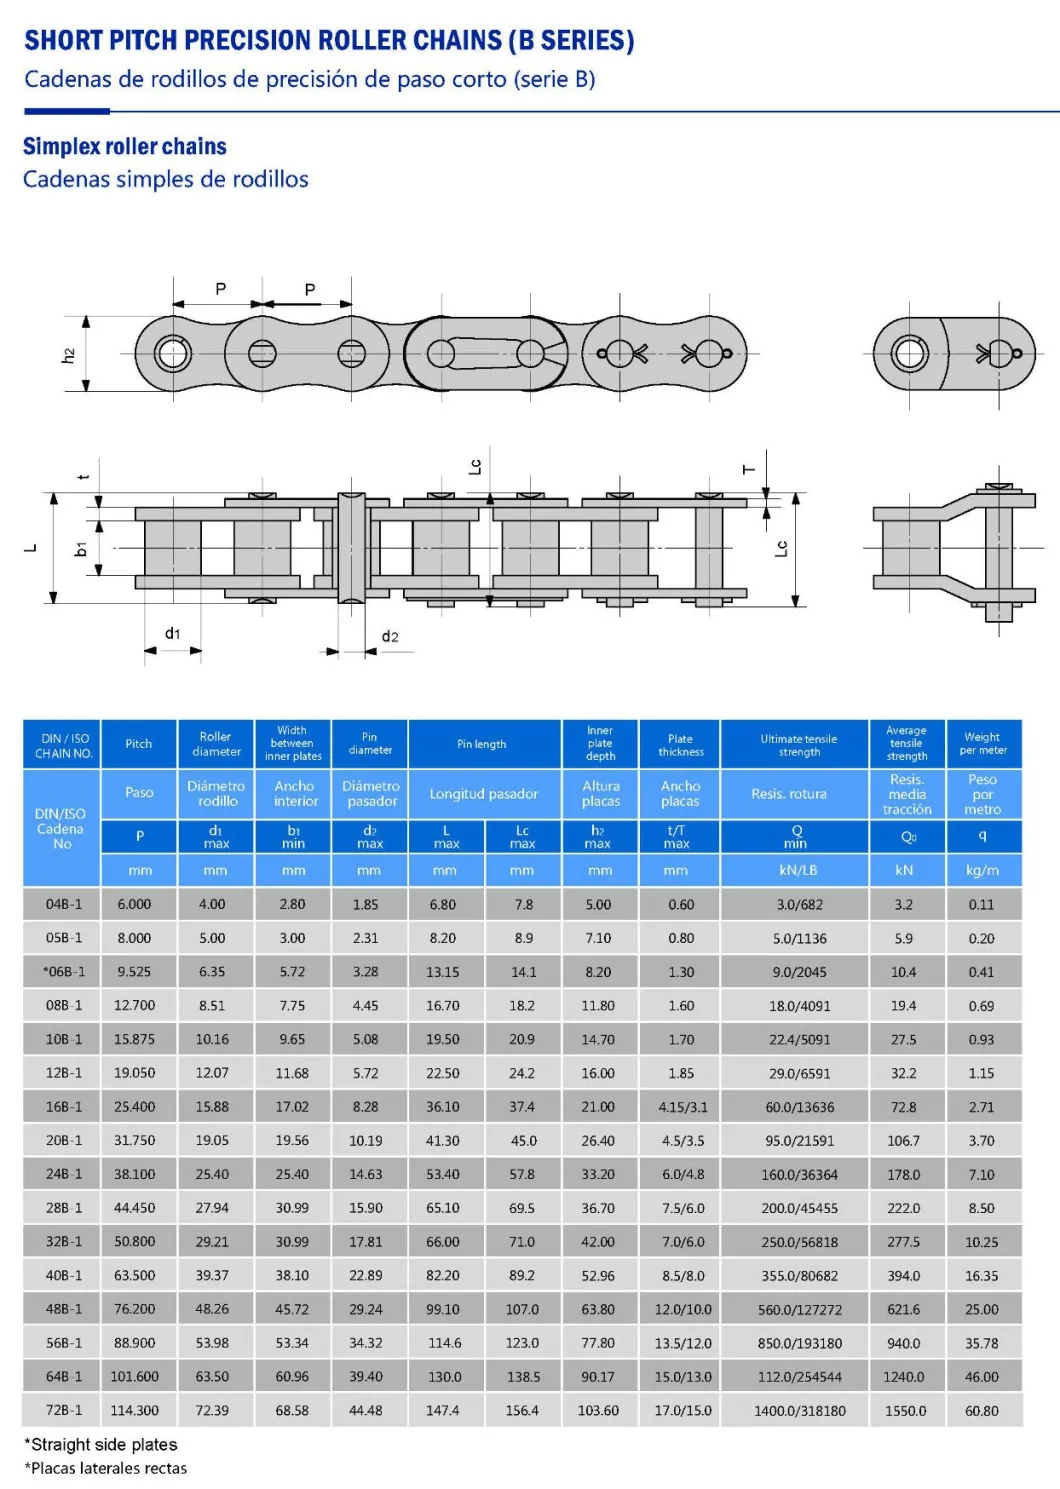 Standard-Roller-Chain-From-China.webp.jpg